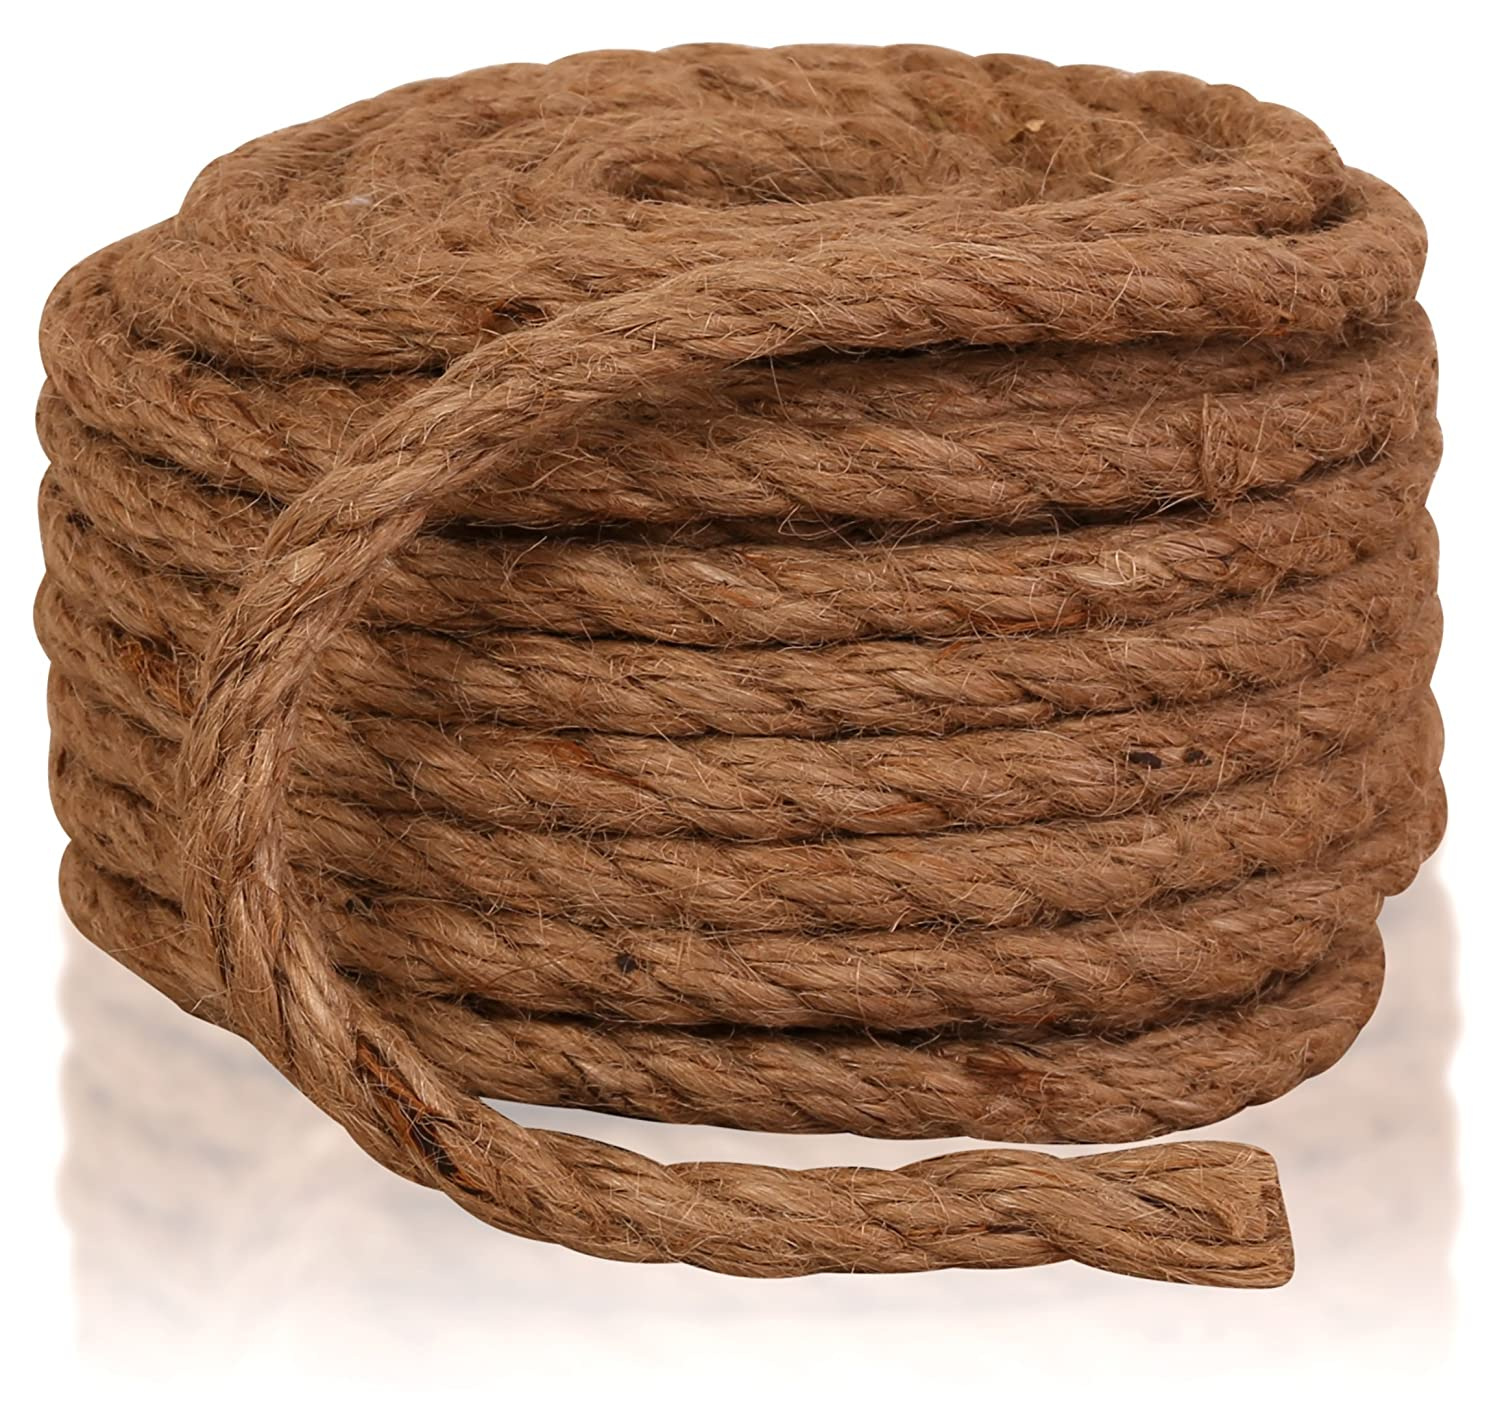 1//4-Inch by 50-Feet DIY Gift Wrapping Cat Scratching Post Replacement All Natural Sisal Fiber Hemp Rope Cord Supply Guru and Burlap Potato Sacks Twisted Sisal Rope Decoration for Arts Crafts